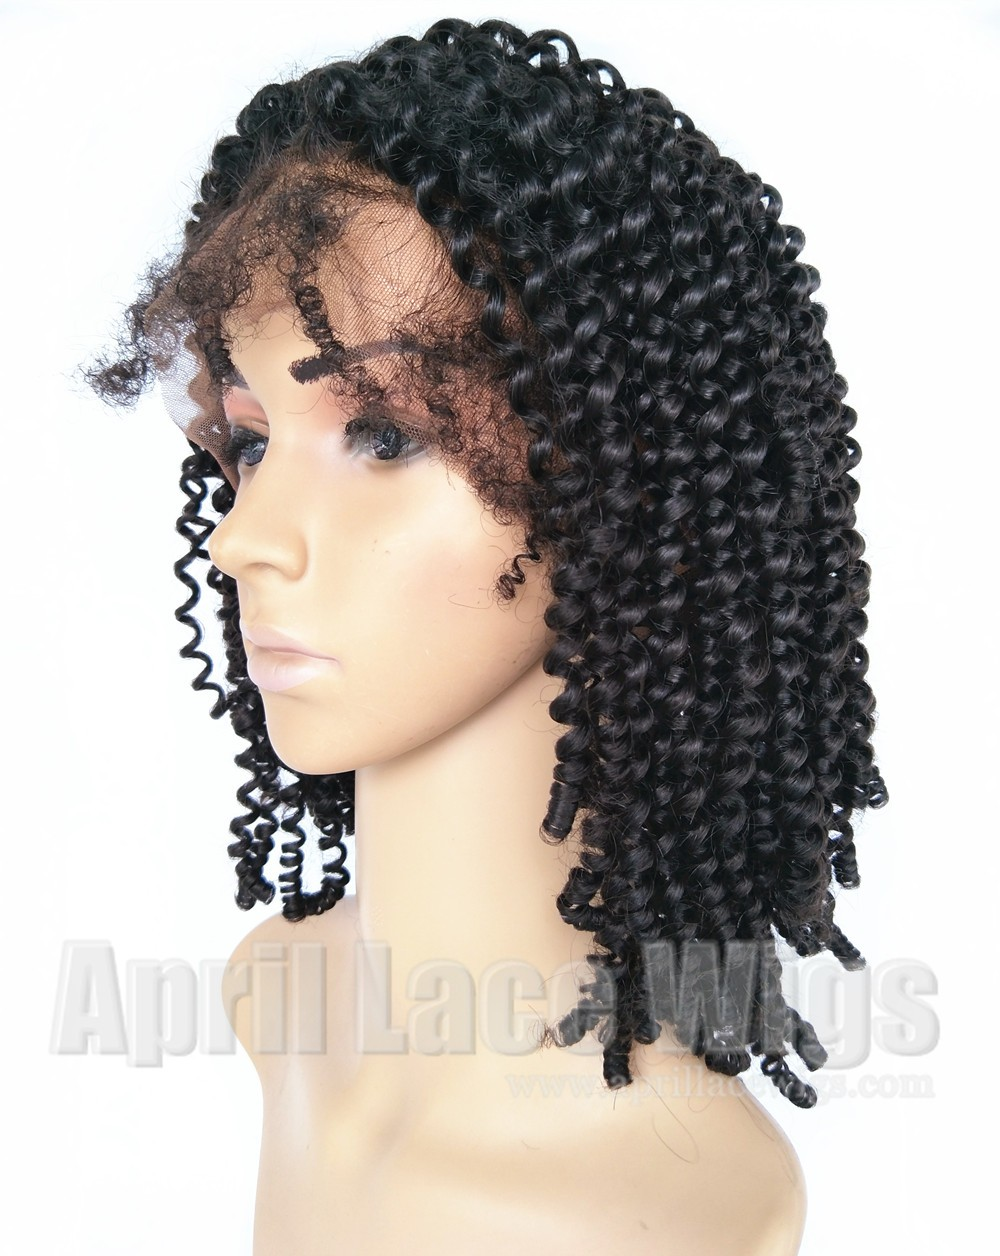 virgin hair kinky curly full lace wig, silk top wig